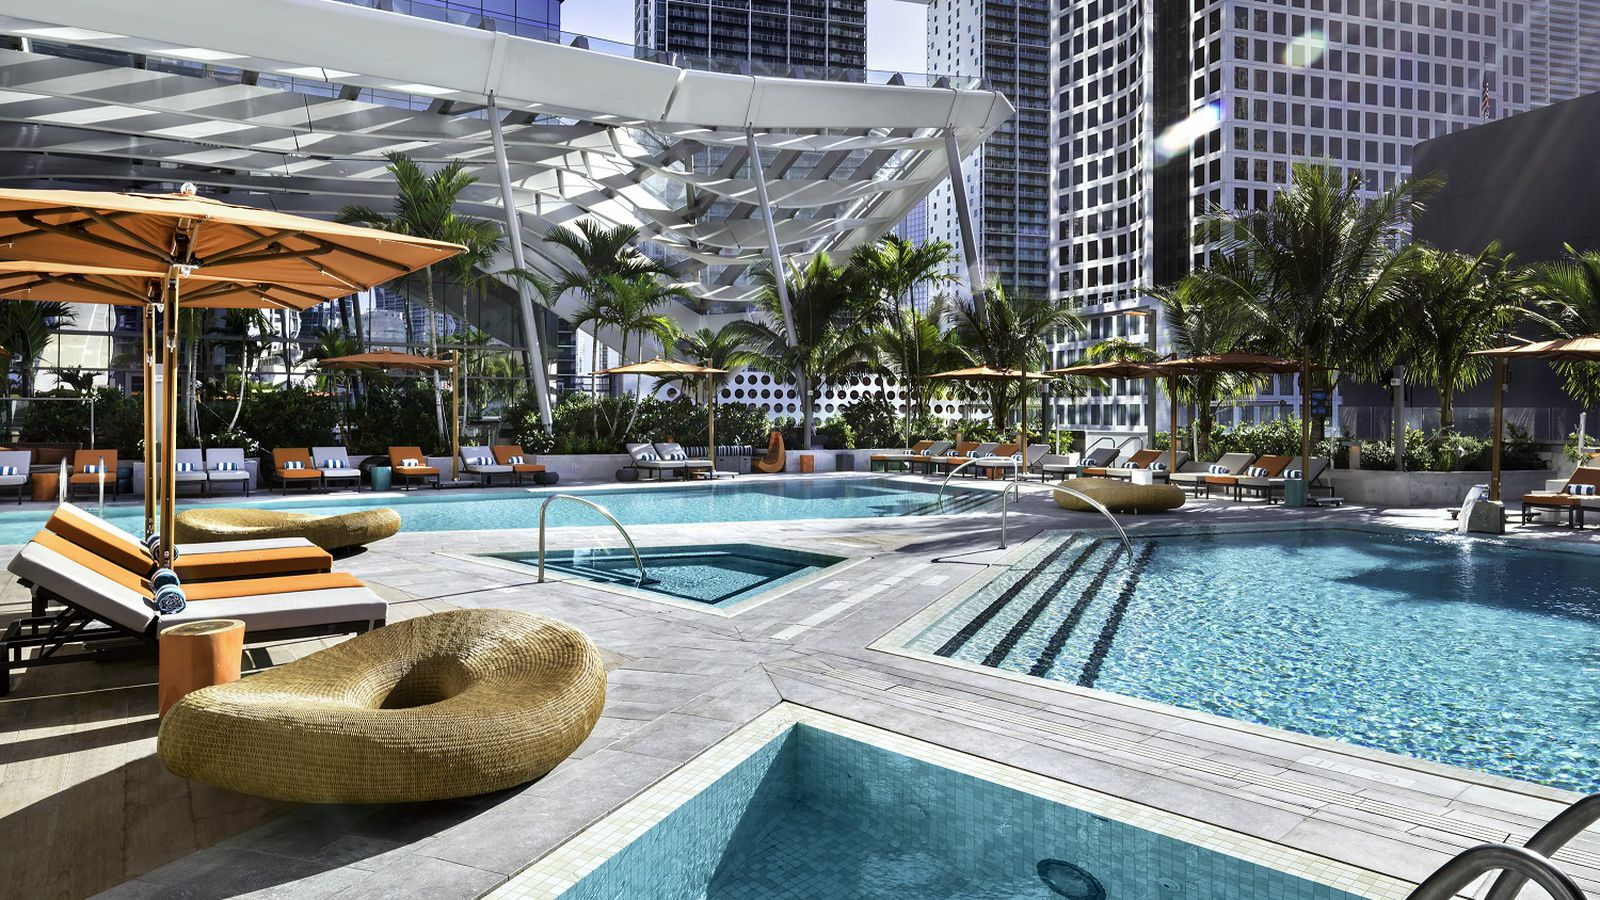 Miami 39 s 11 ultimate hotel pools summer 2017 curbed miami - Cheap hotels in aberdeen with swimming pool ...